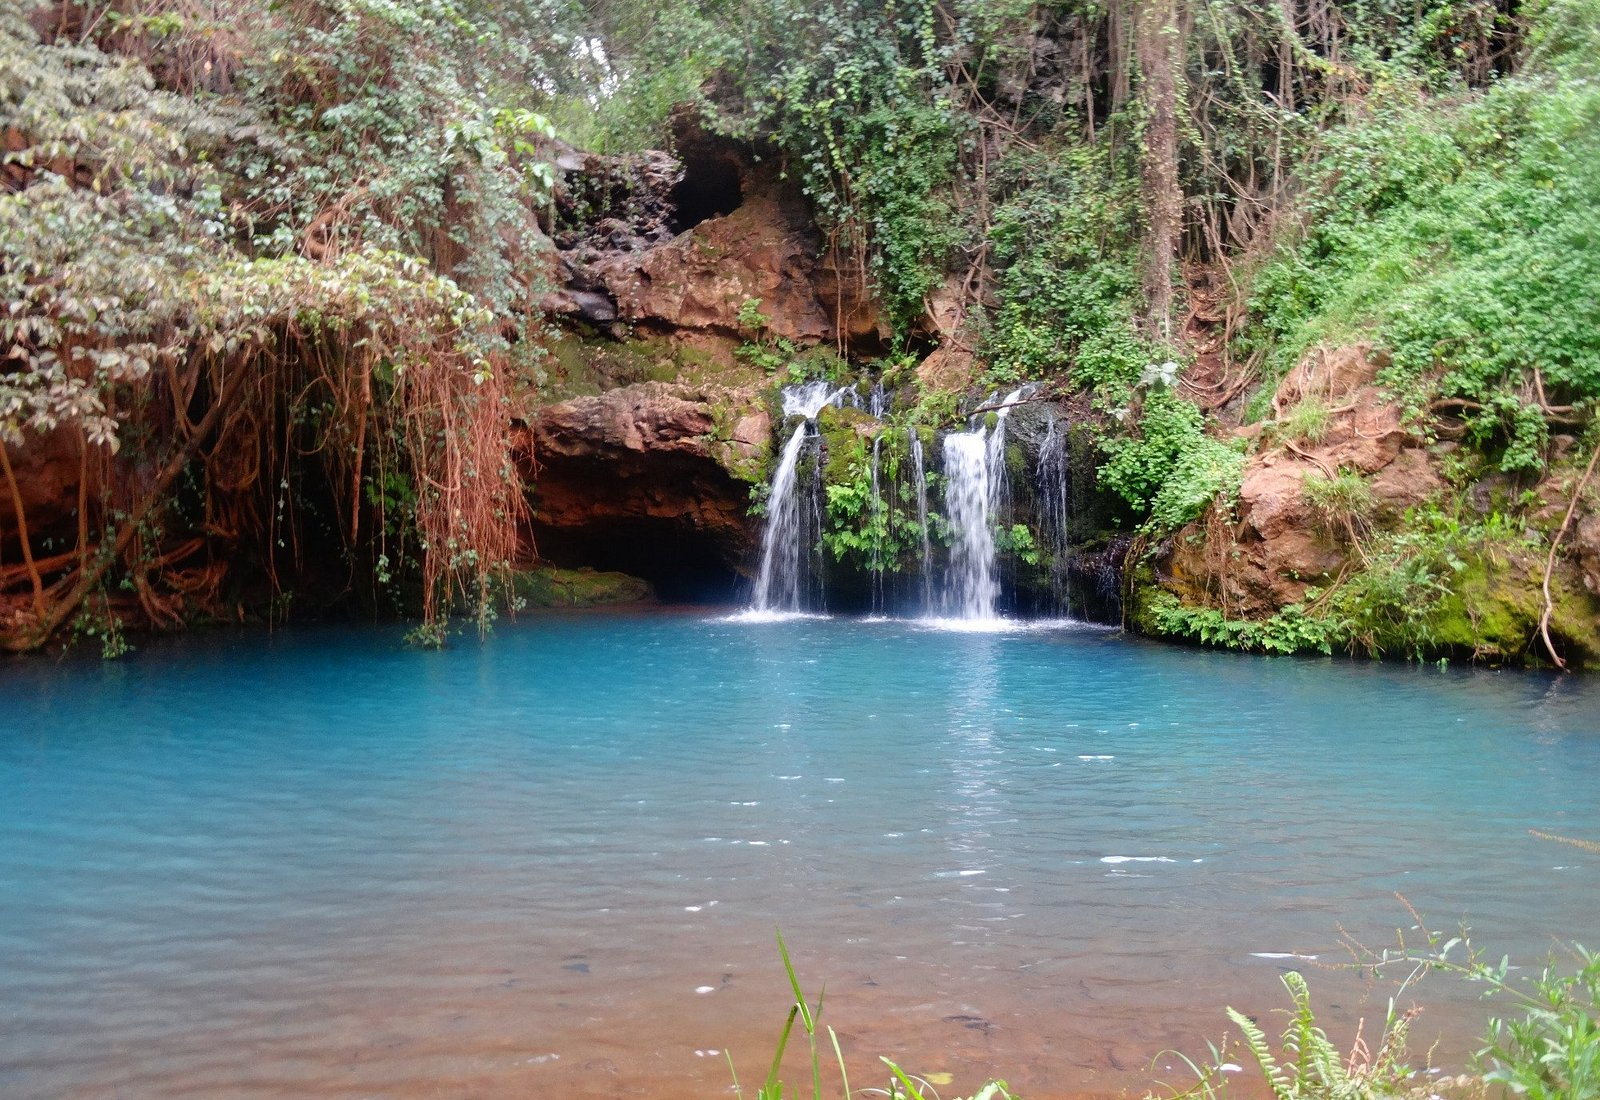 The blue pool. Source of Ngare Ndare river